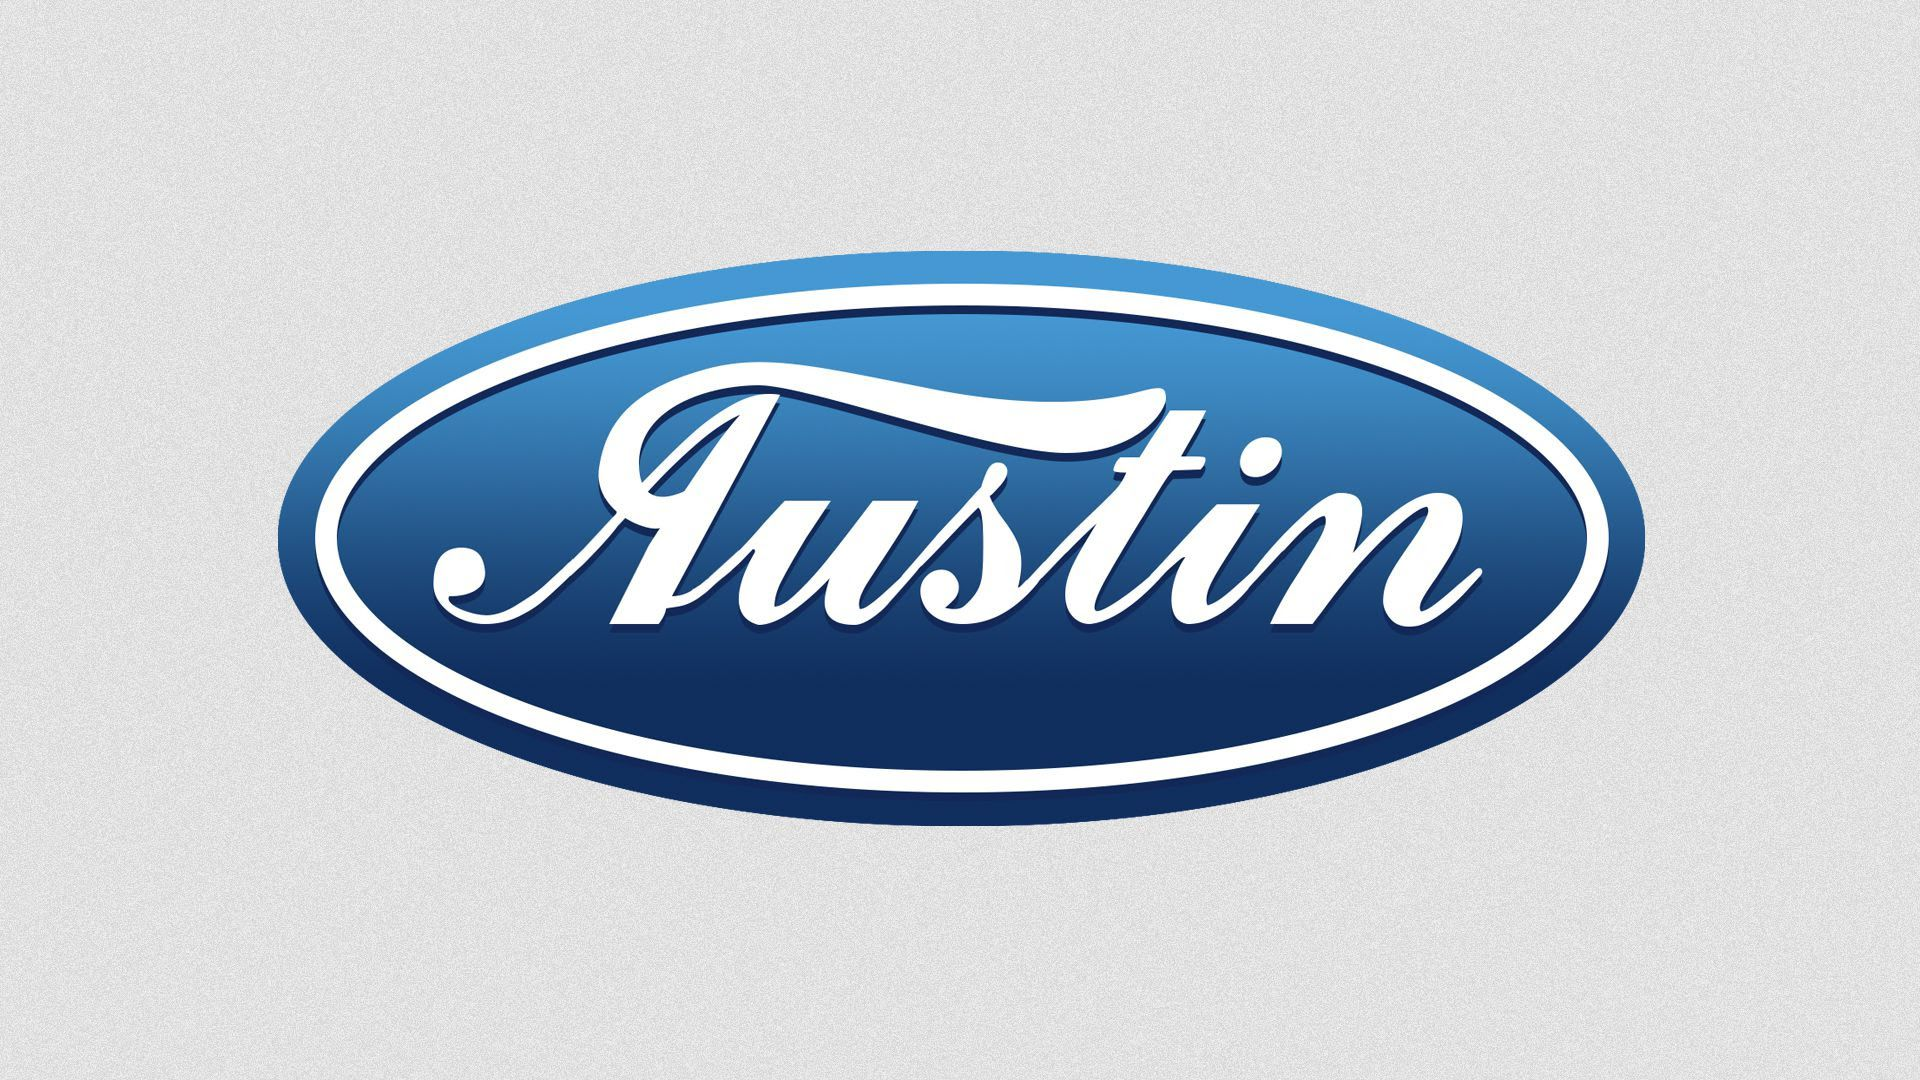 An illustration of the word Austin styled as the Ford logo